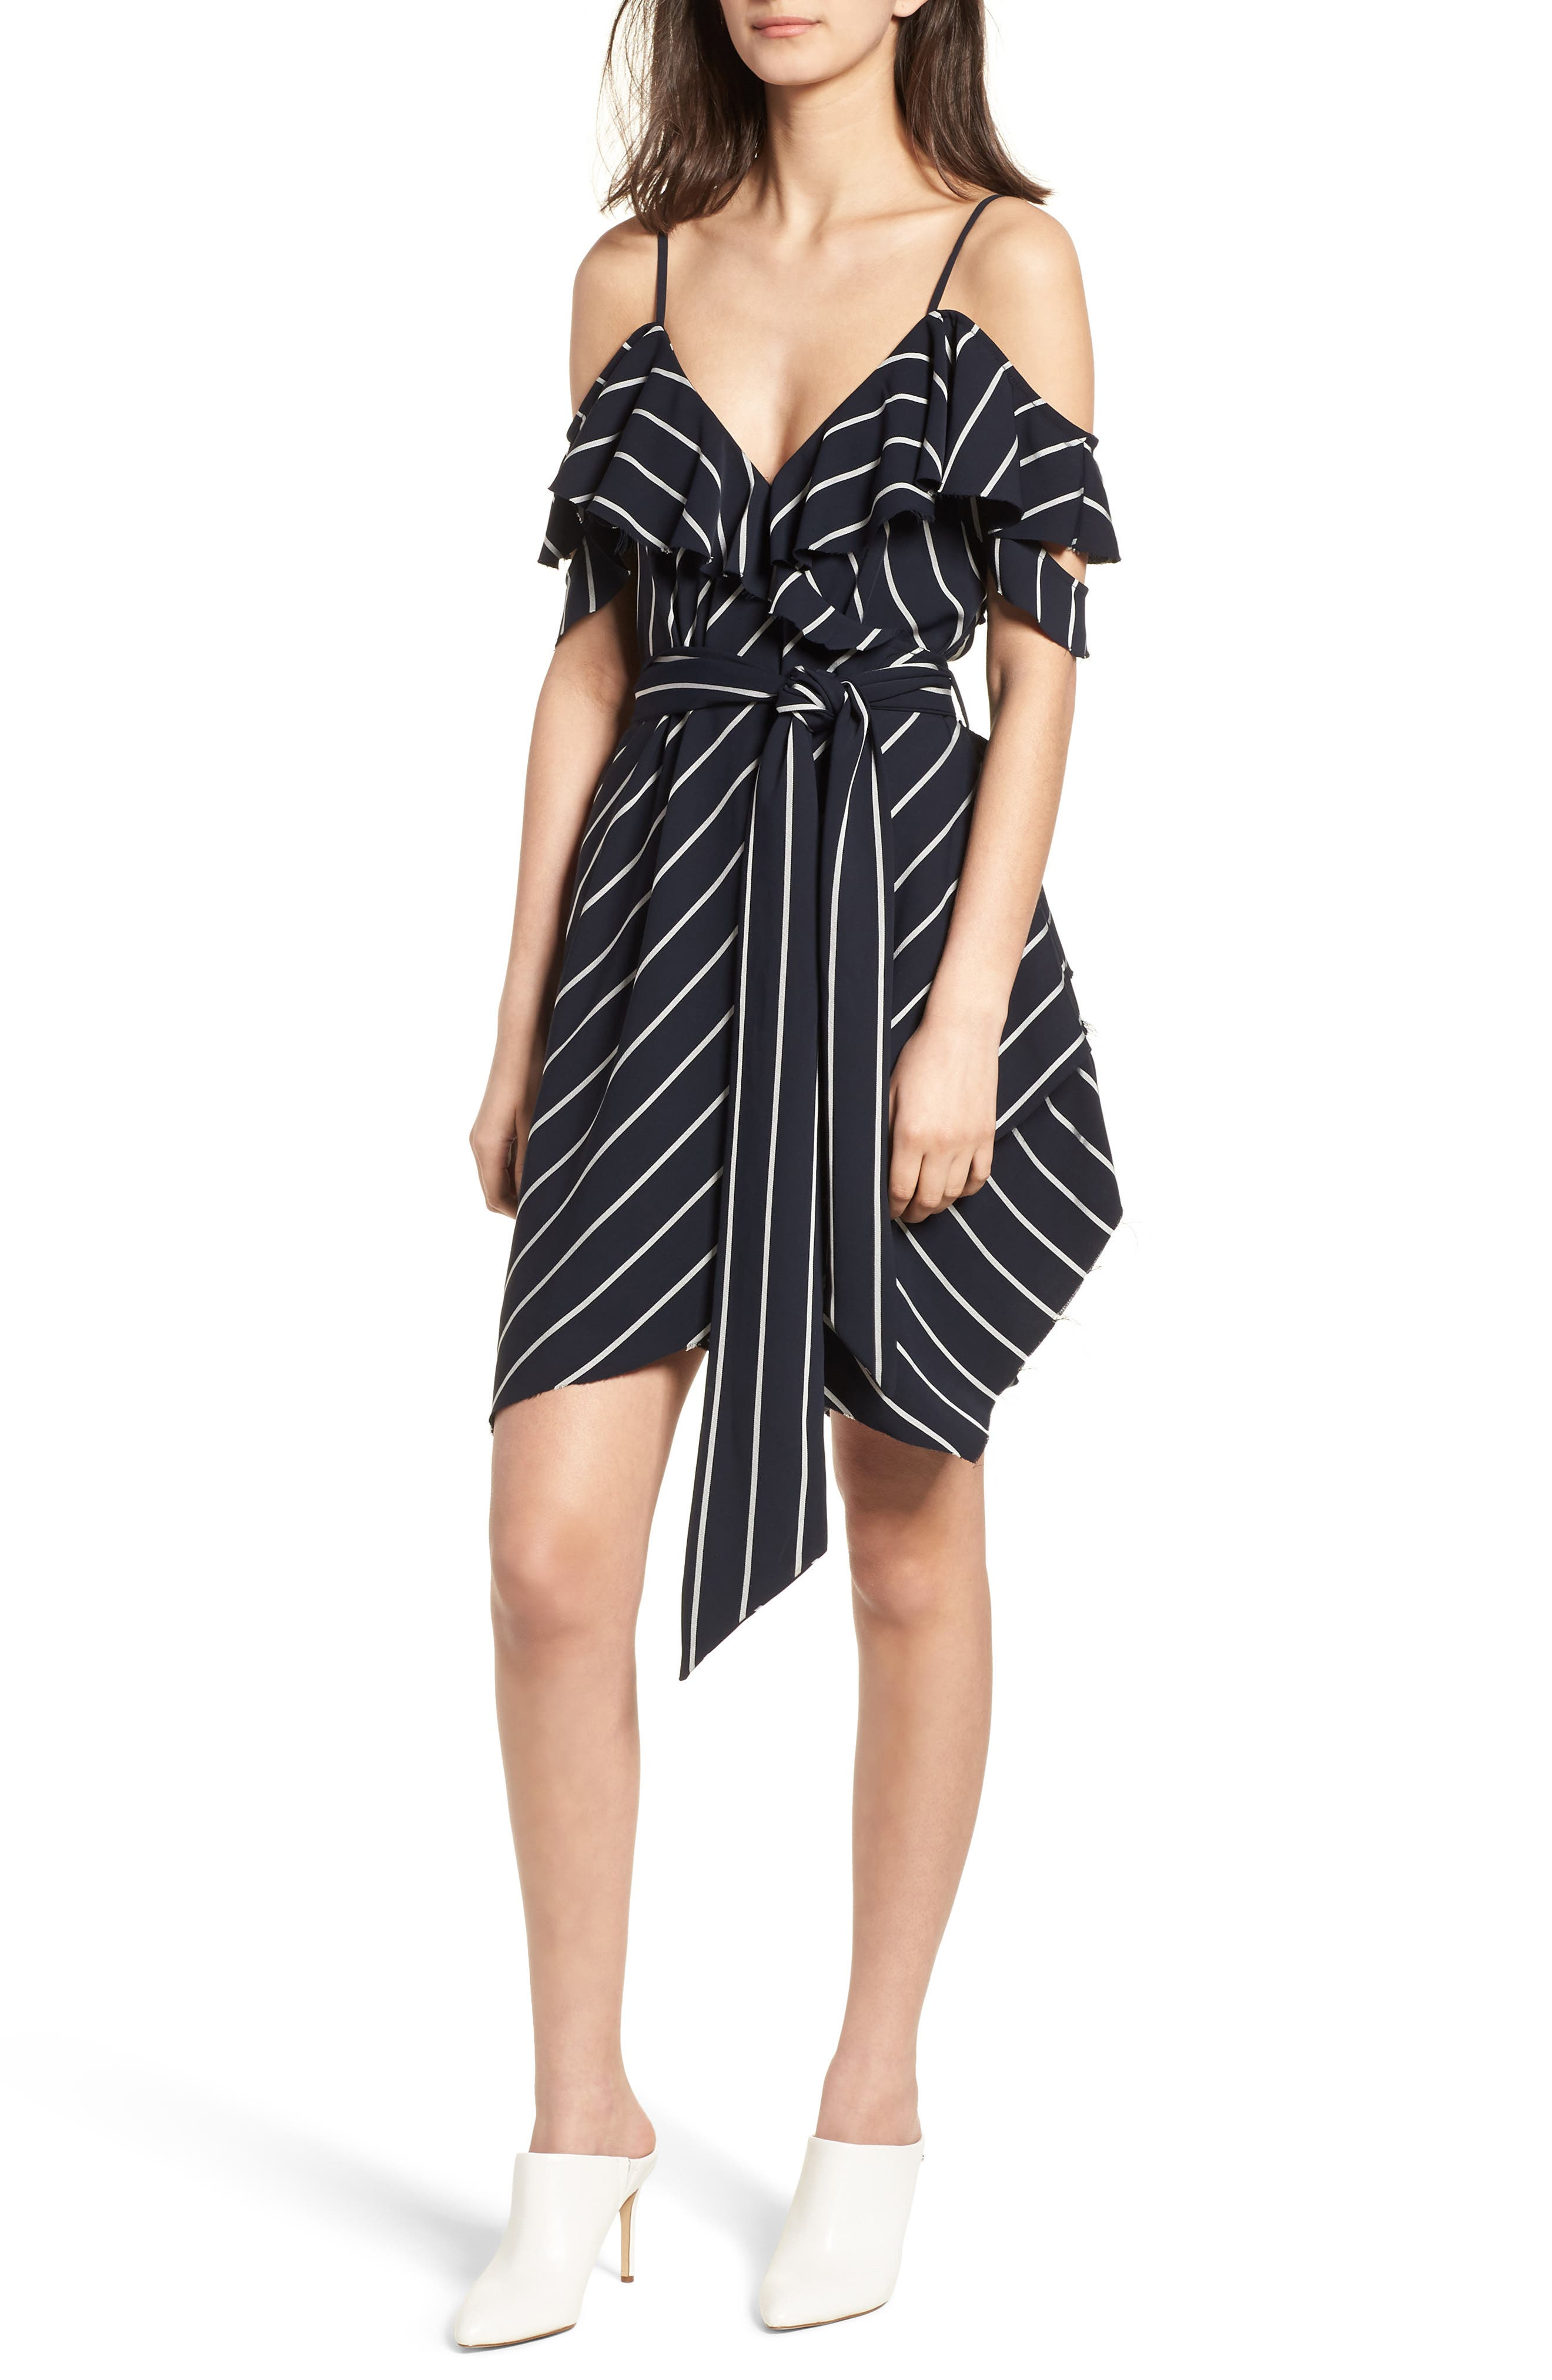 Alternate Image 1 Selected - KENDALL + KYLIE Pinstripe Ruffle Wrap Dress